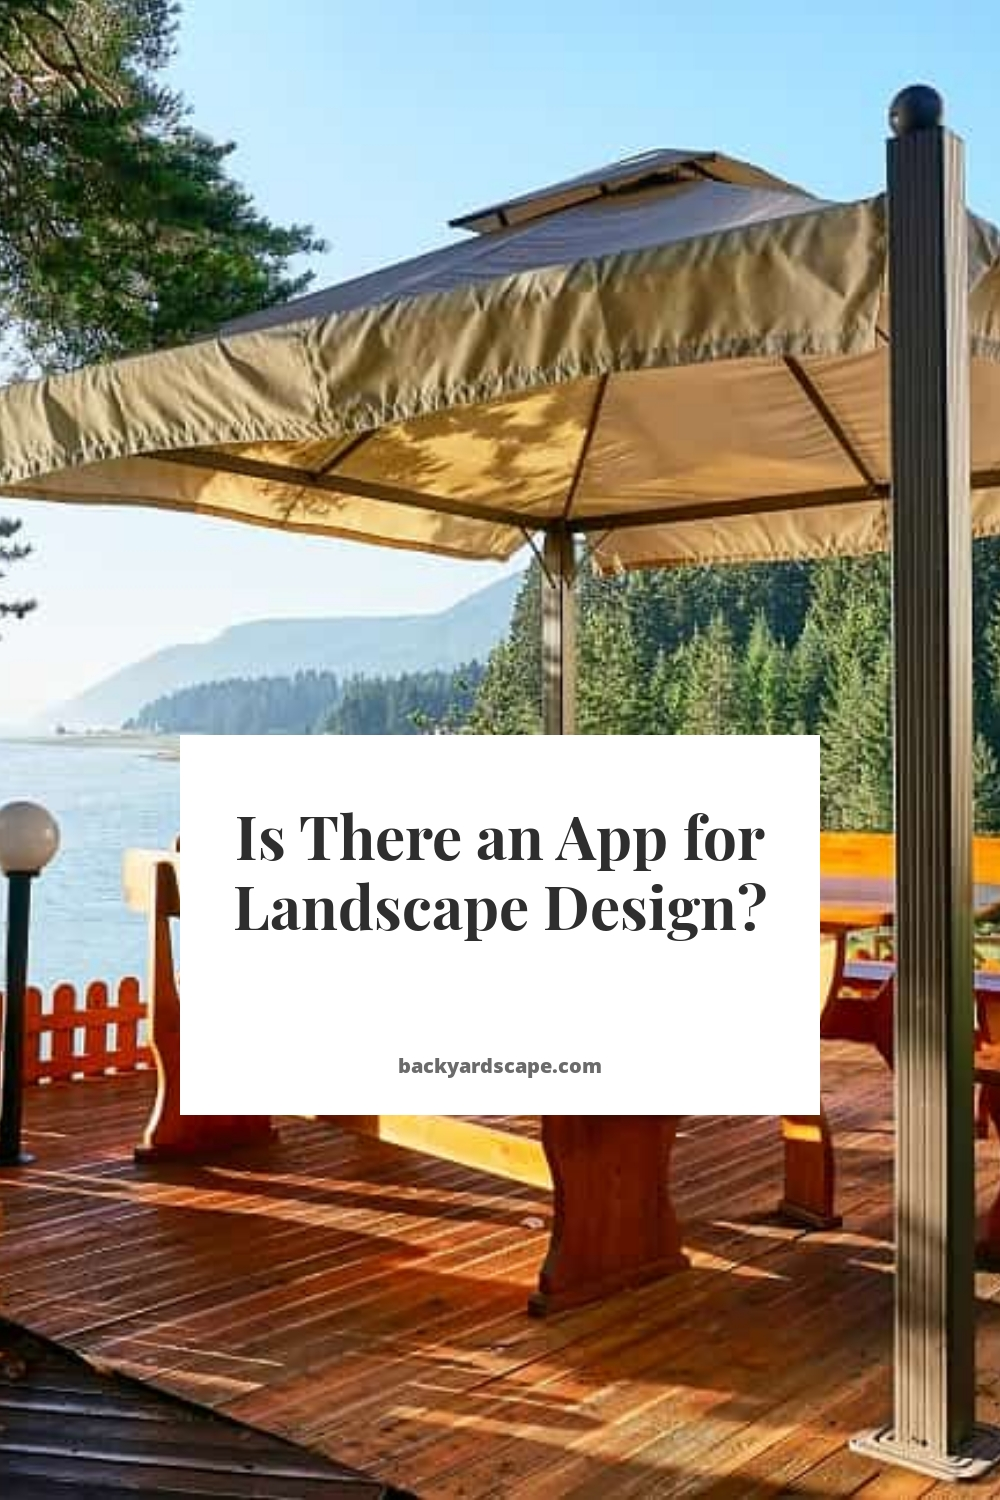 Is There an App for Landscape Design?